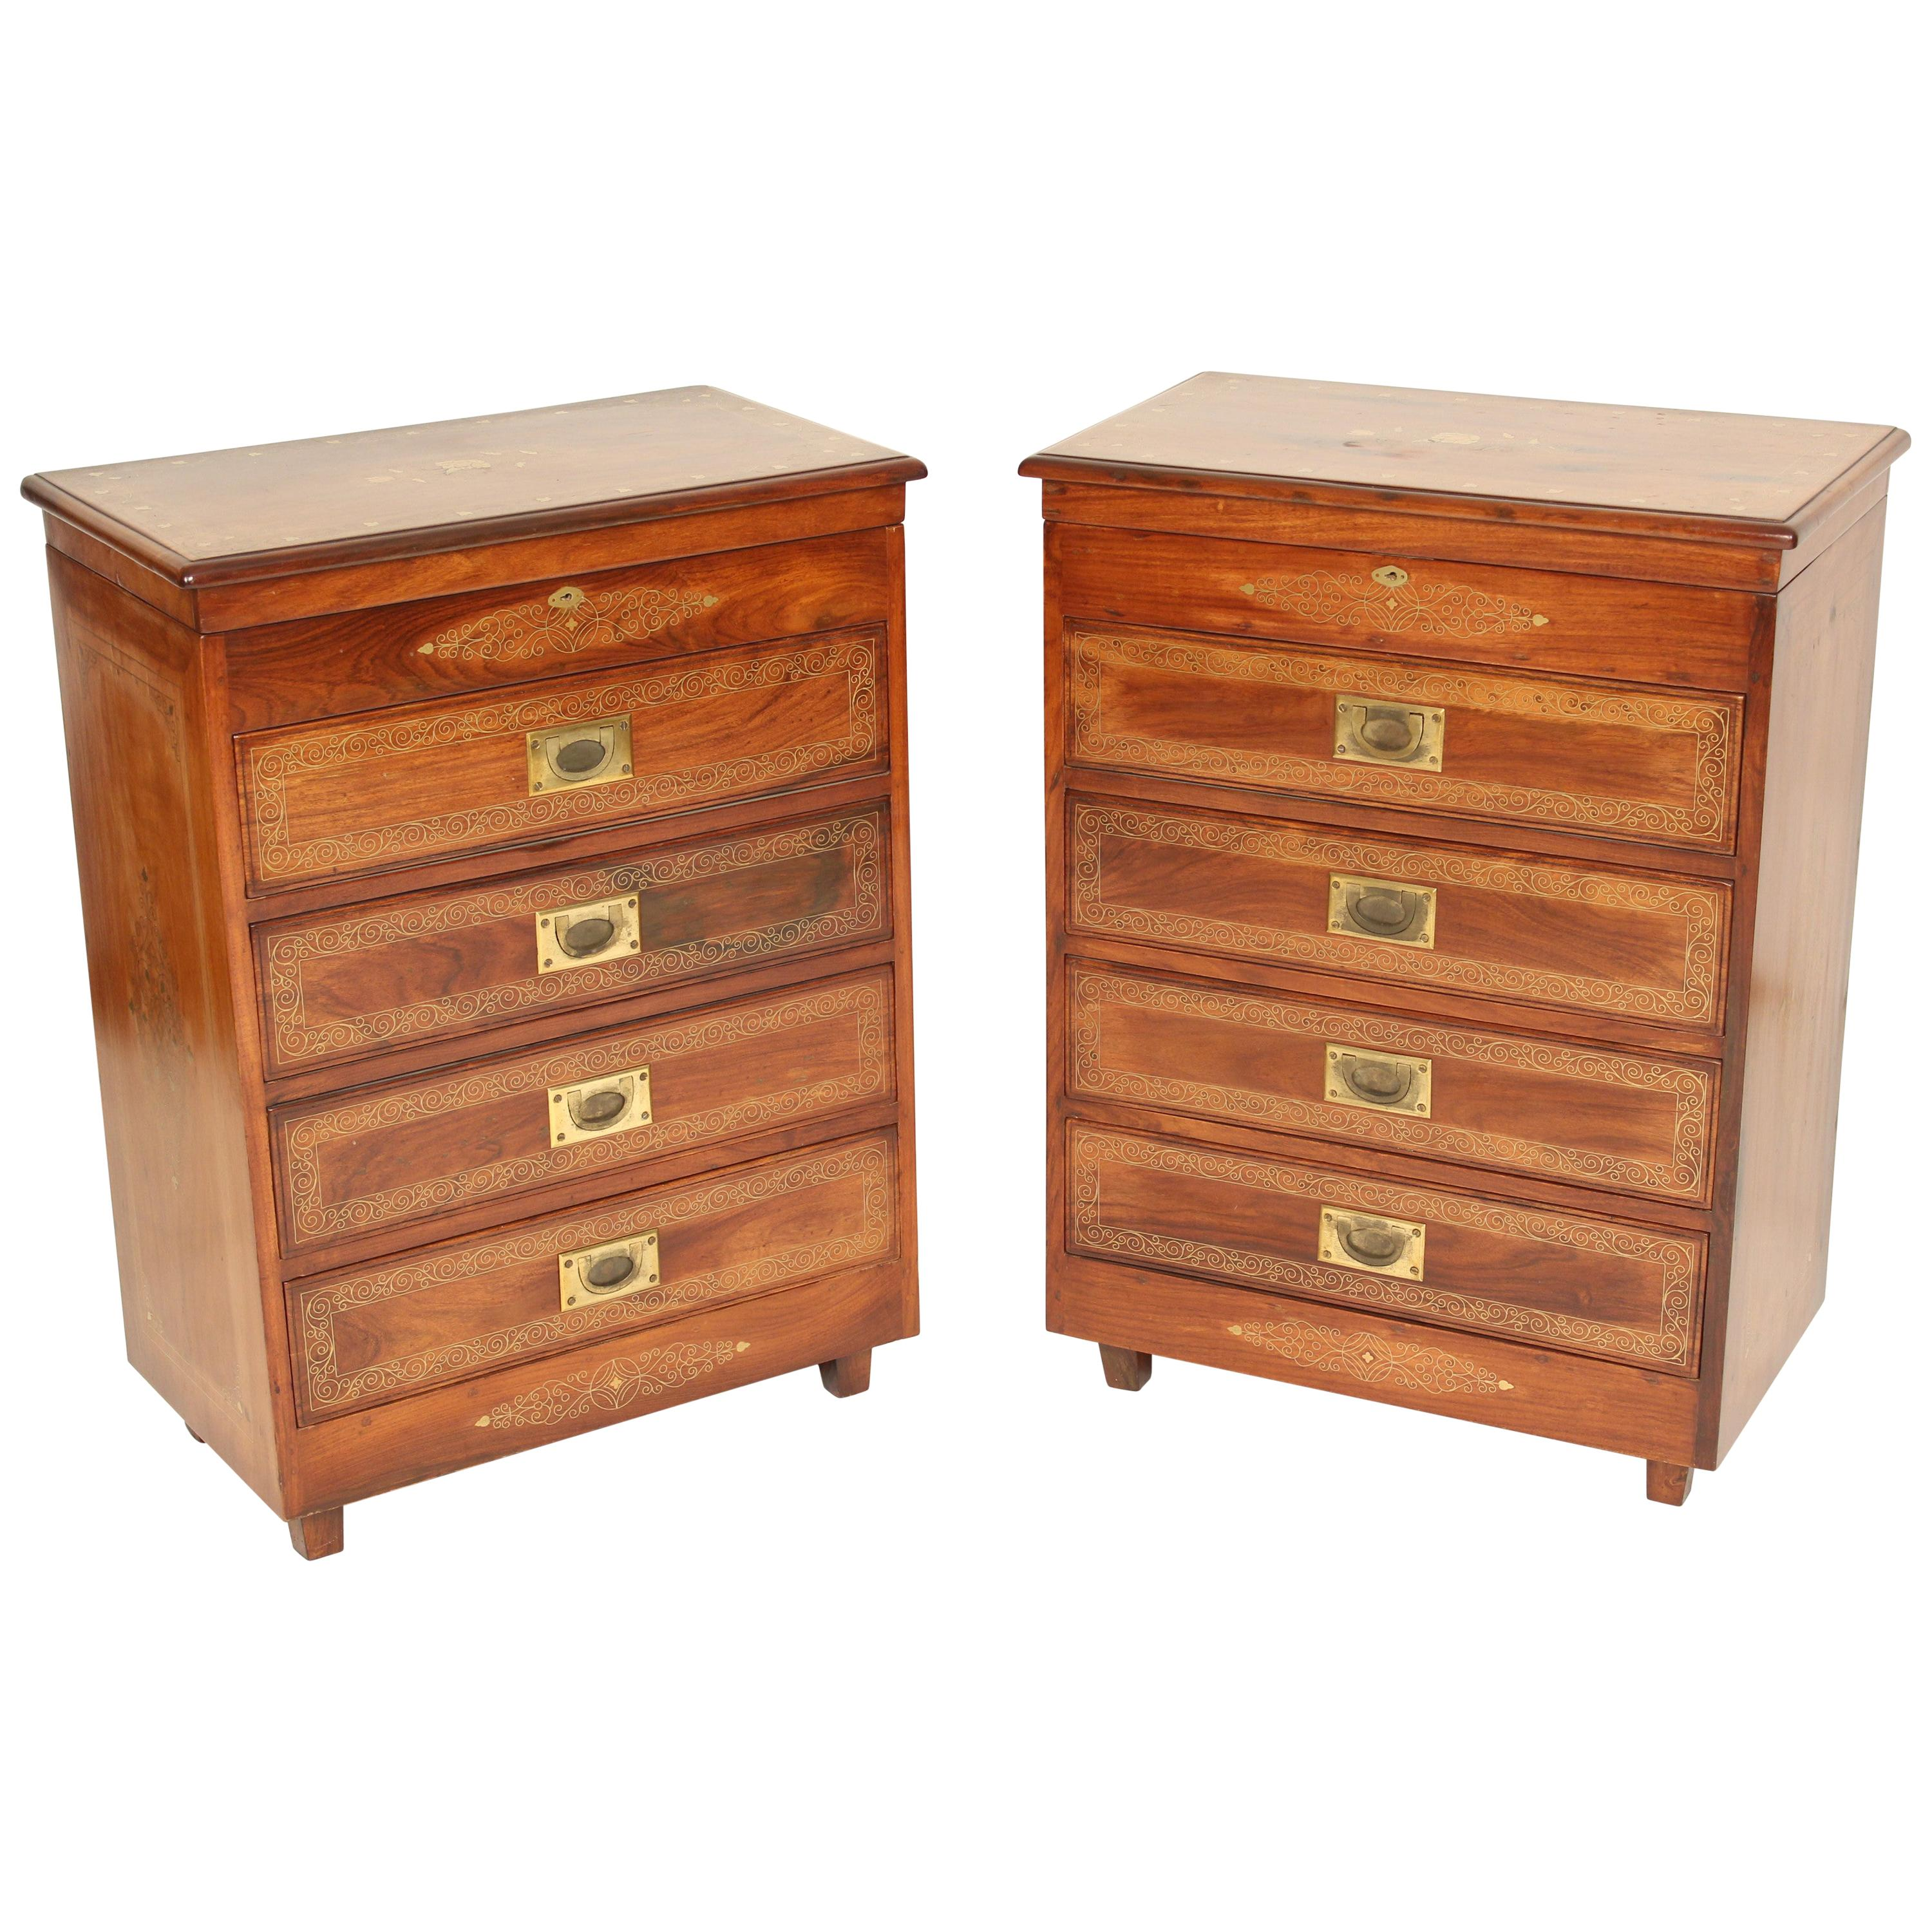 Pair of Campaign Style Brass Inlaid Chests of Drawers